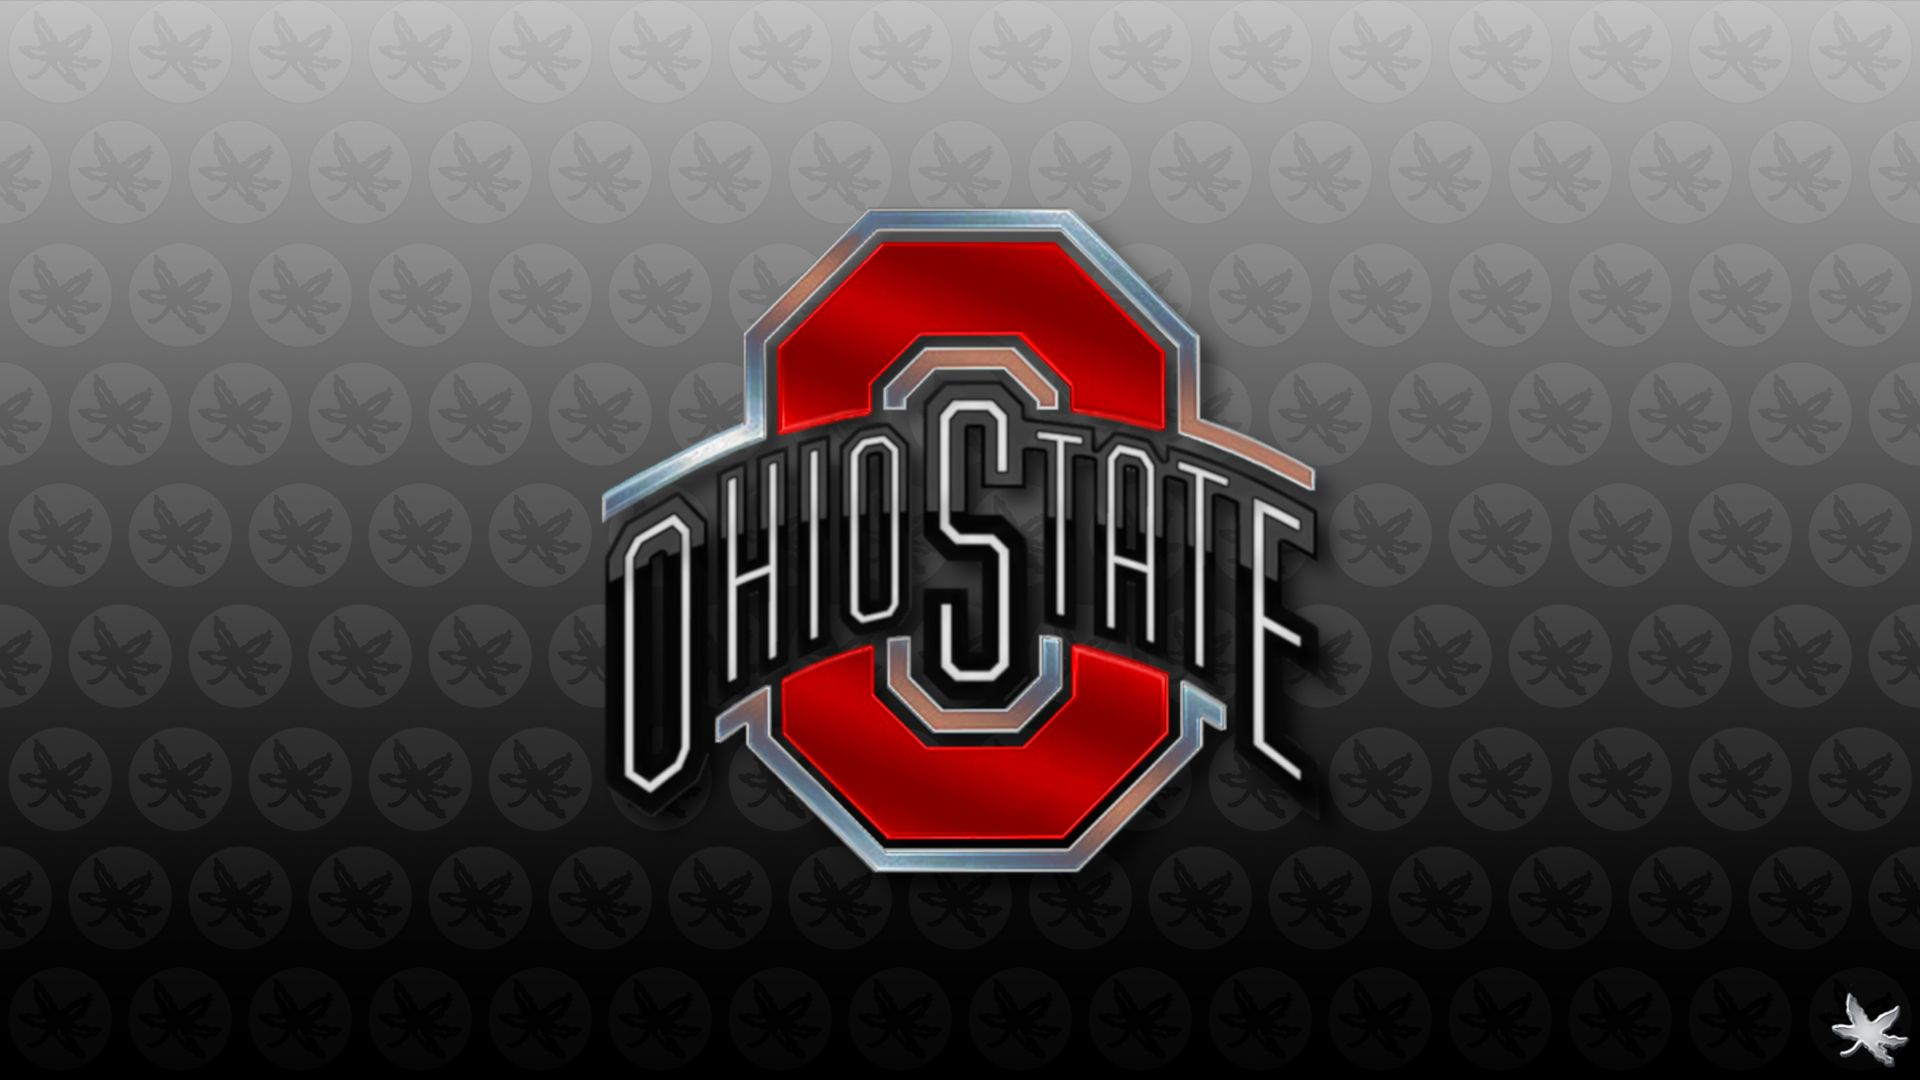 Osu Wallpaper 503 B Ohio State Buckeyes Football Ohio State Buckeyes Buckeyes Football